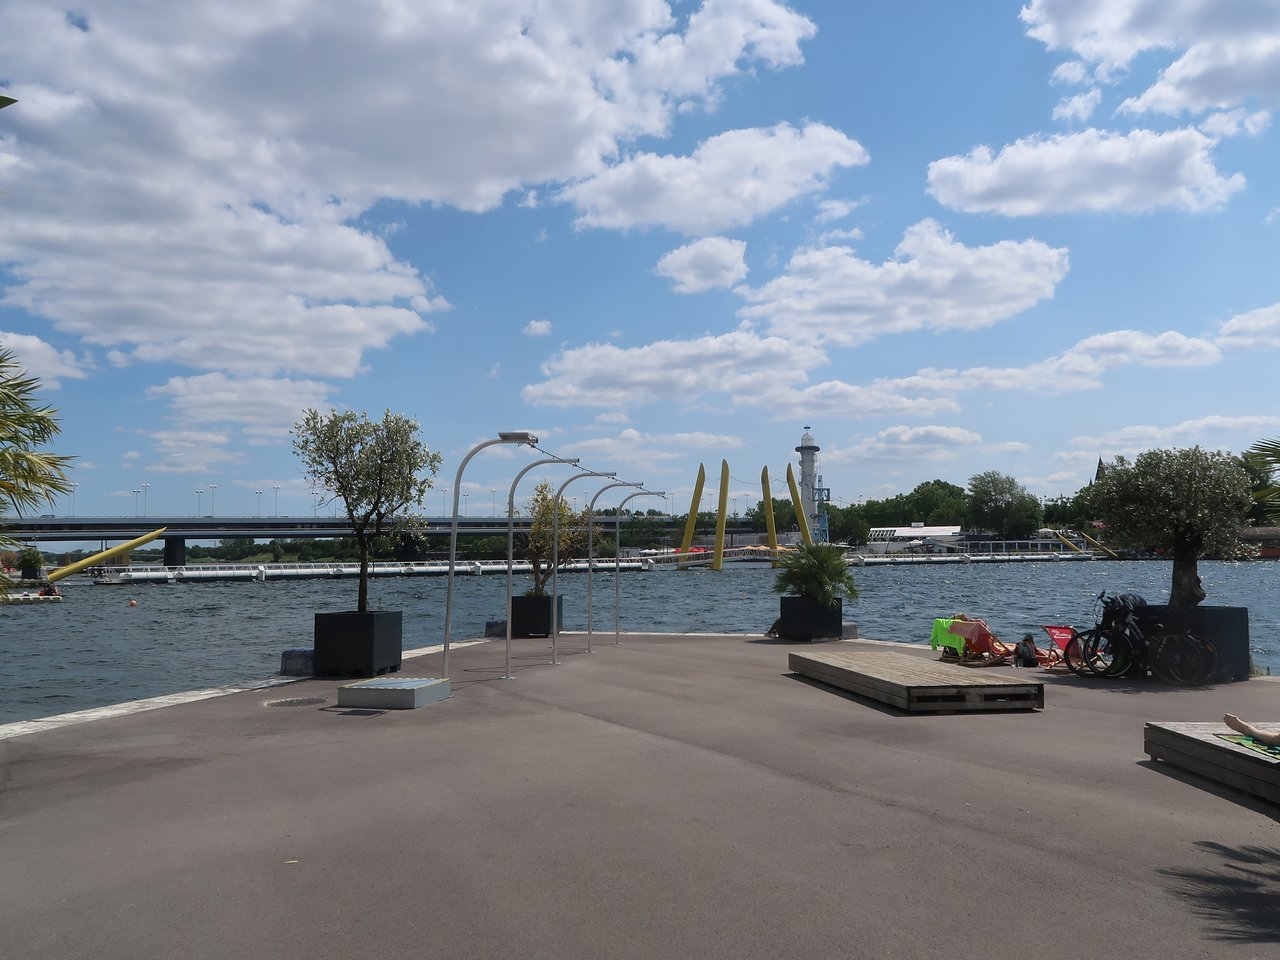 Donauinsel Vienna 2020 All You Need To Know Before You Go With Photos Tripadvisor